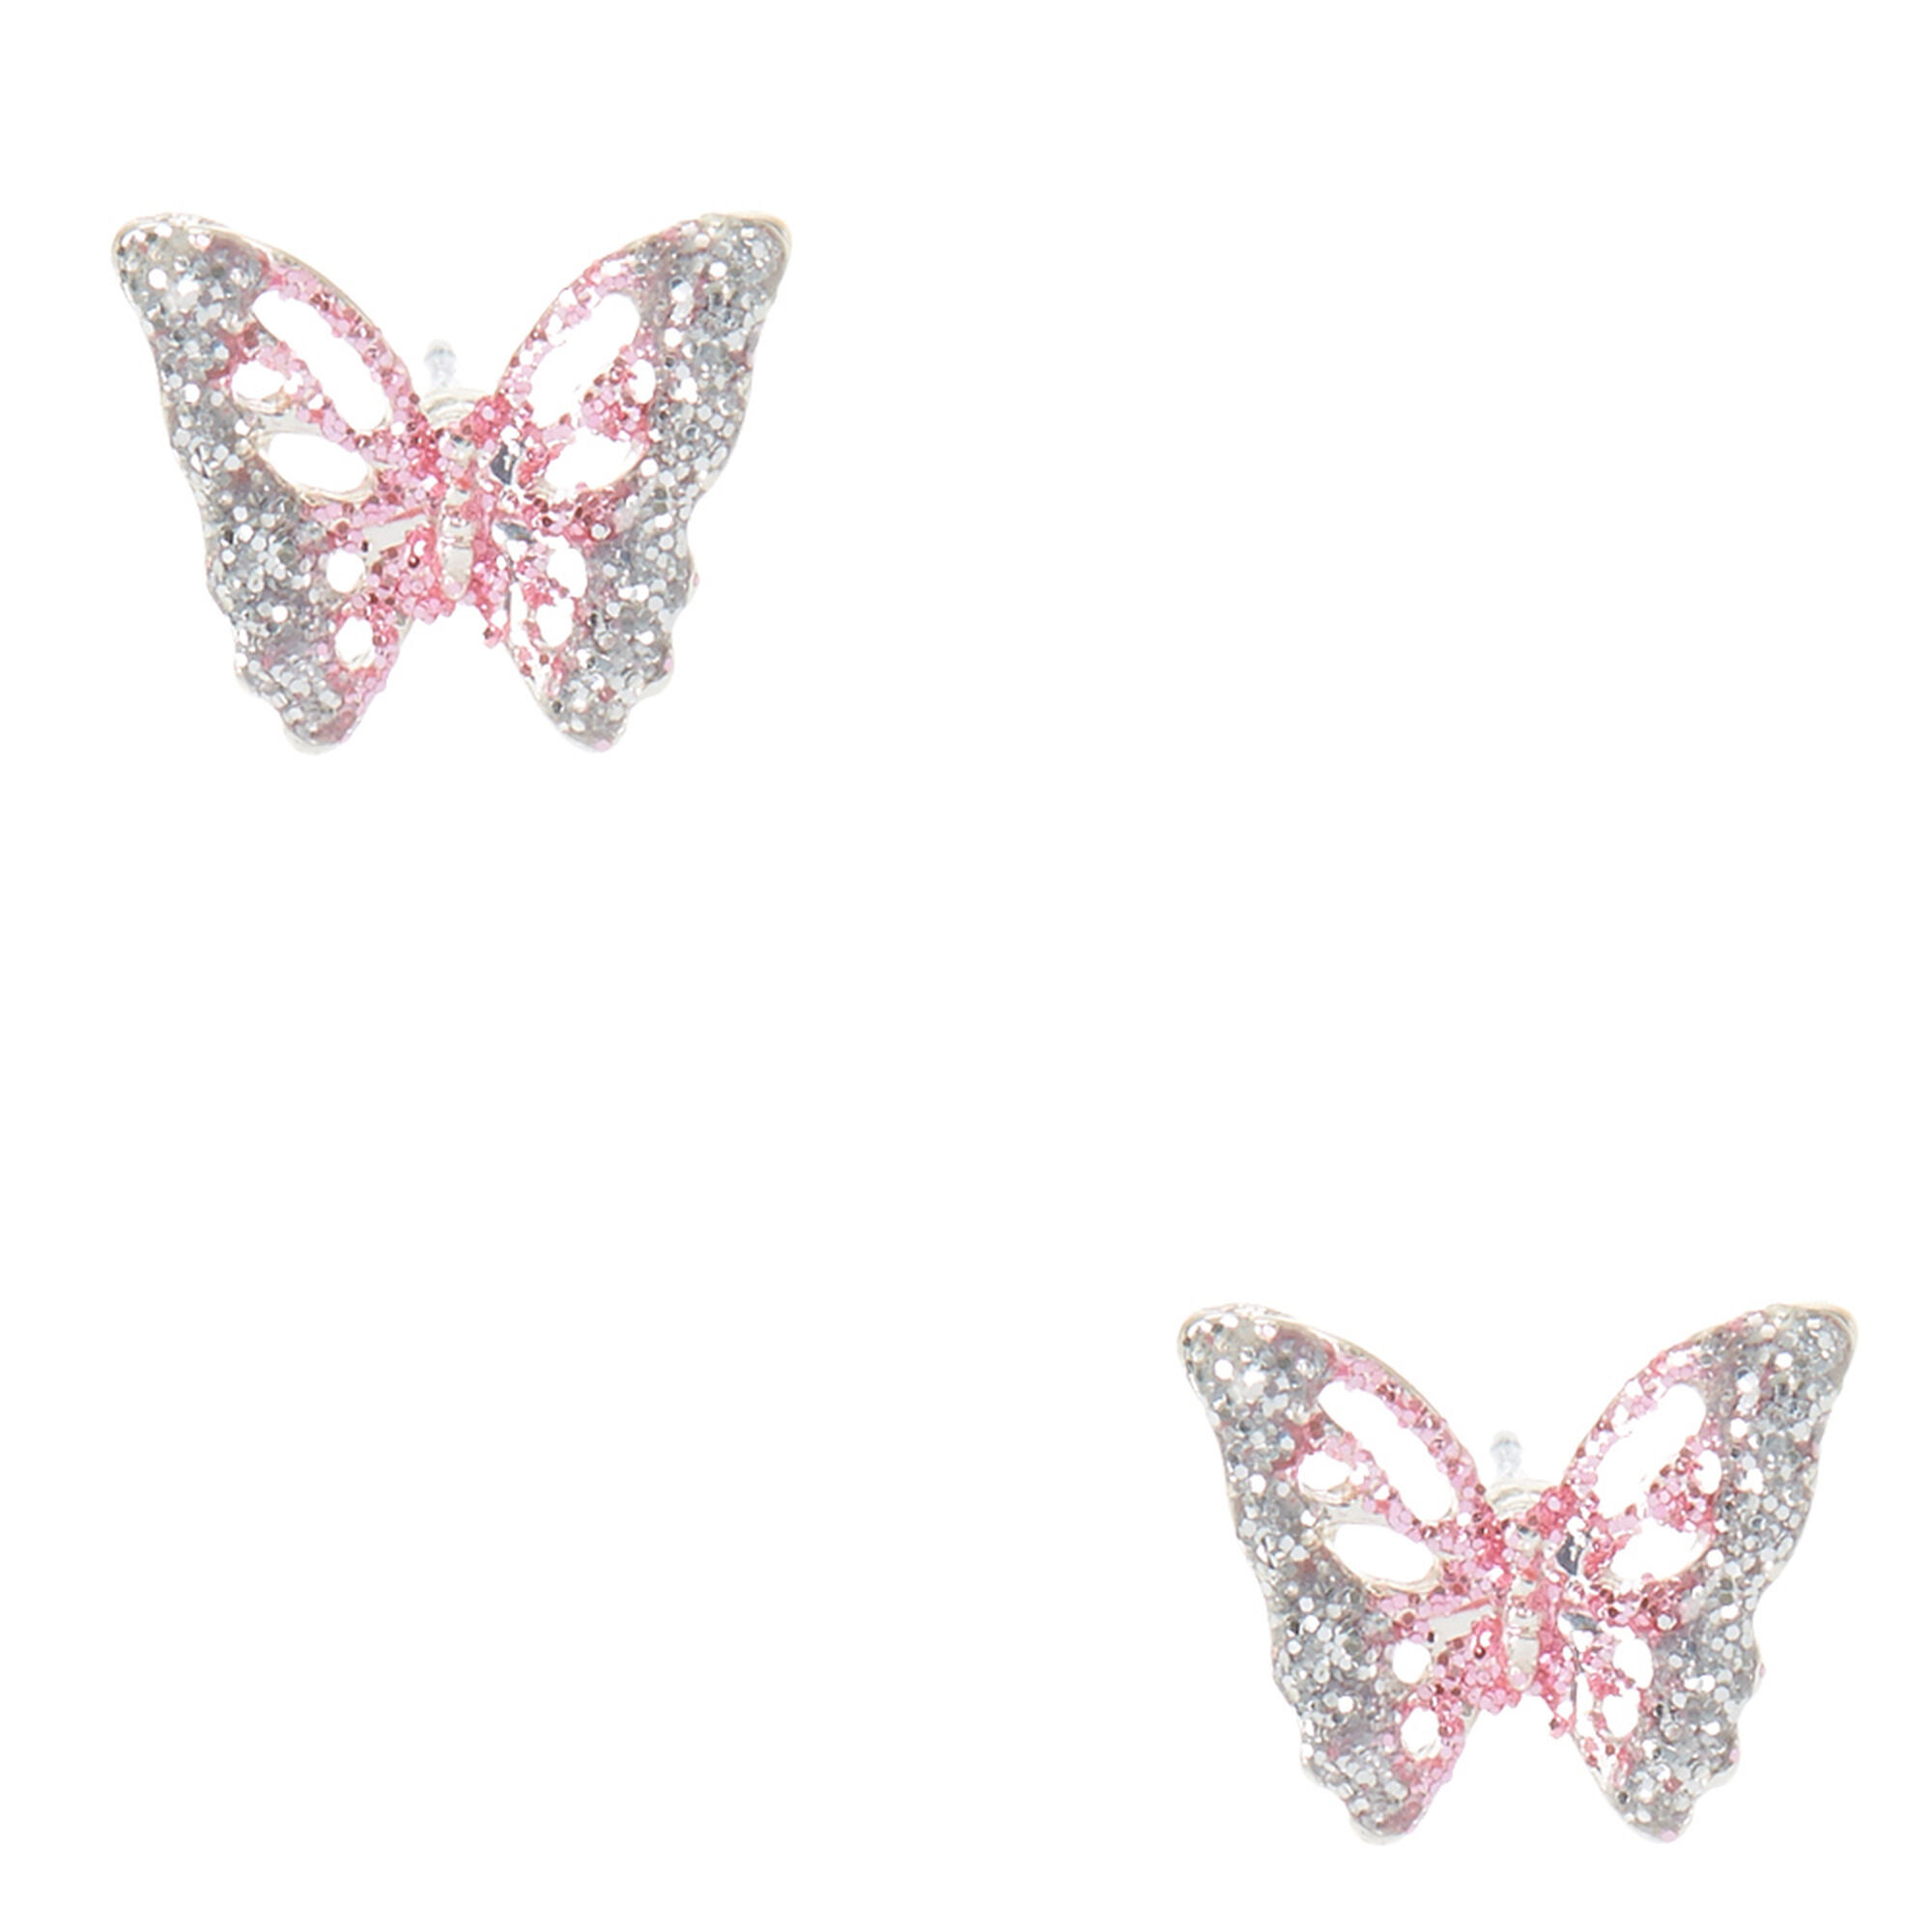 steel butterfly for ablaze stud jewelry titanium stainless gp wholesale retailers products gold rose earrings